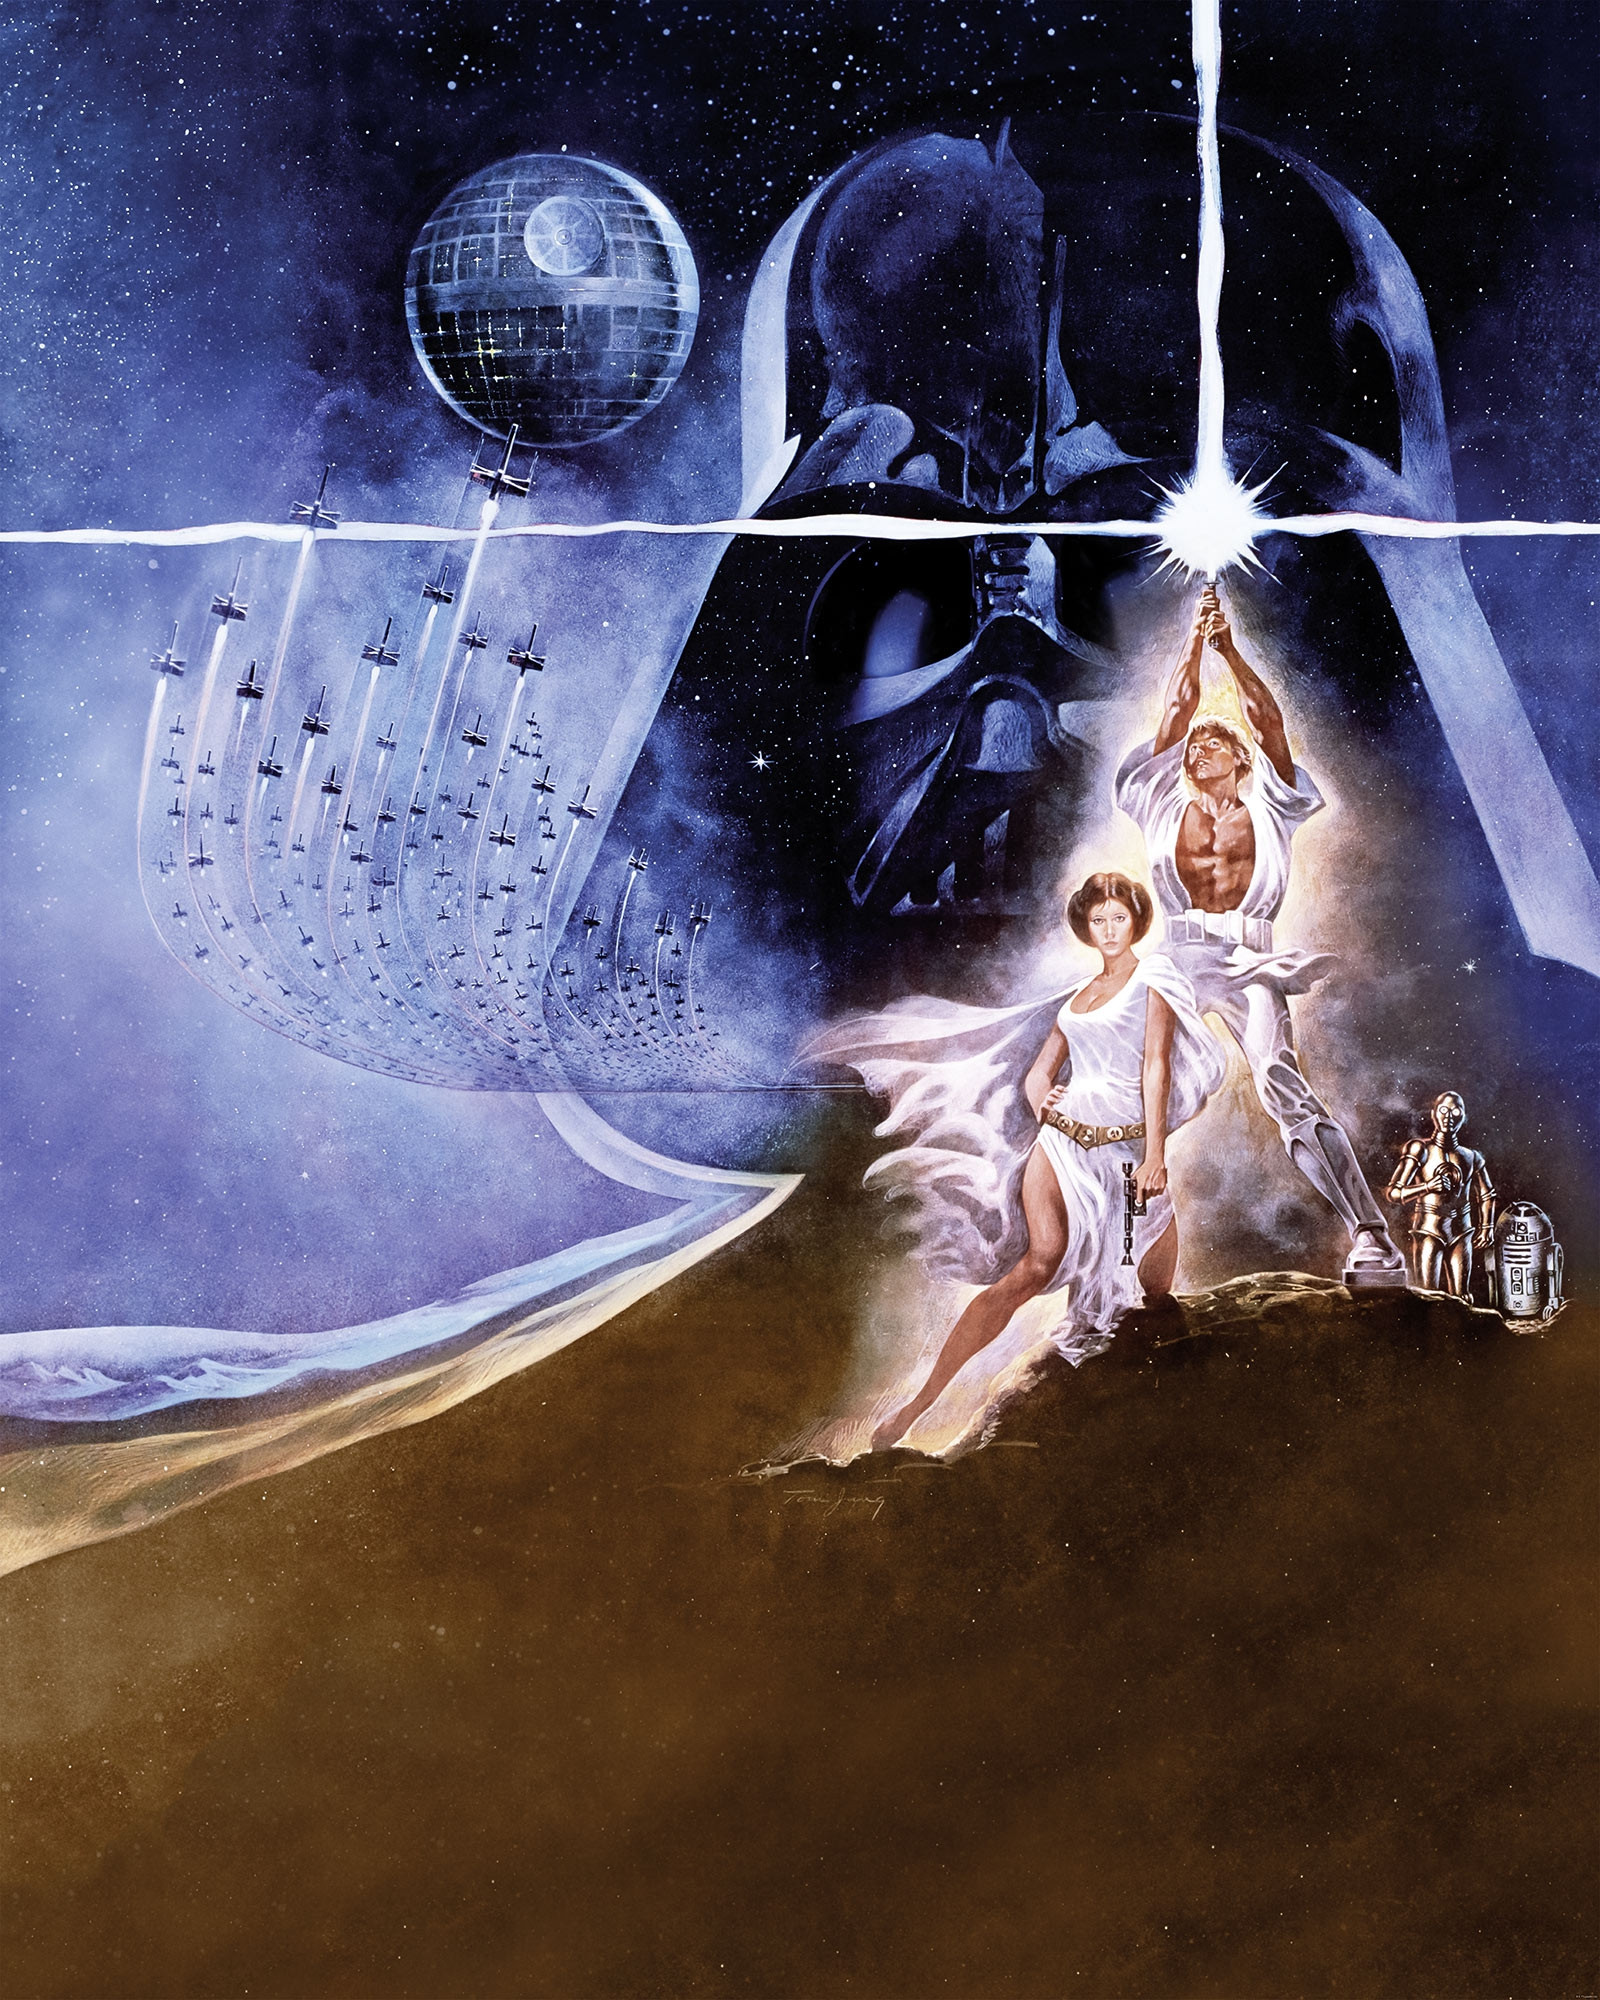 Nonwoven photomural Star Wars Poster Classic 2 from